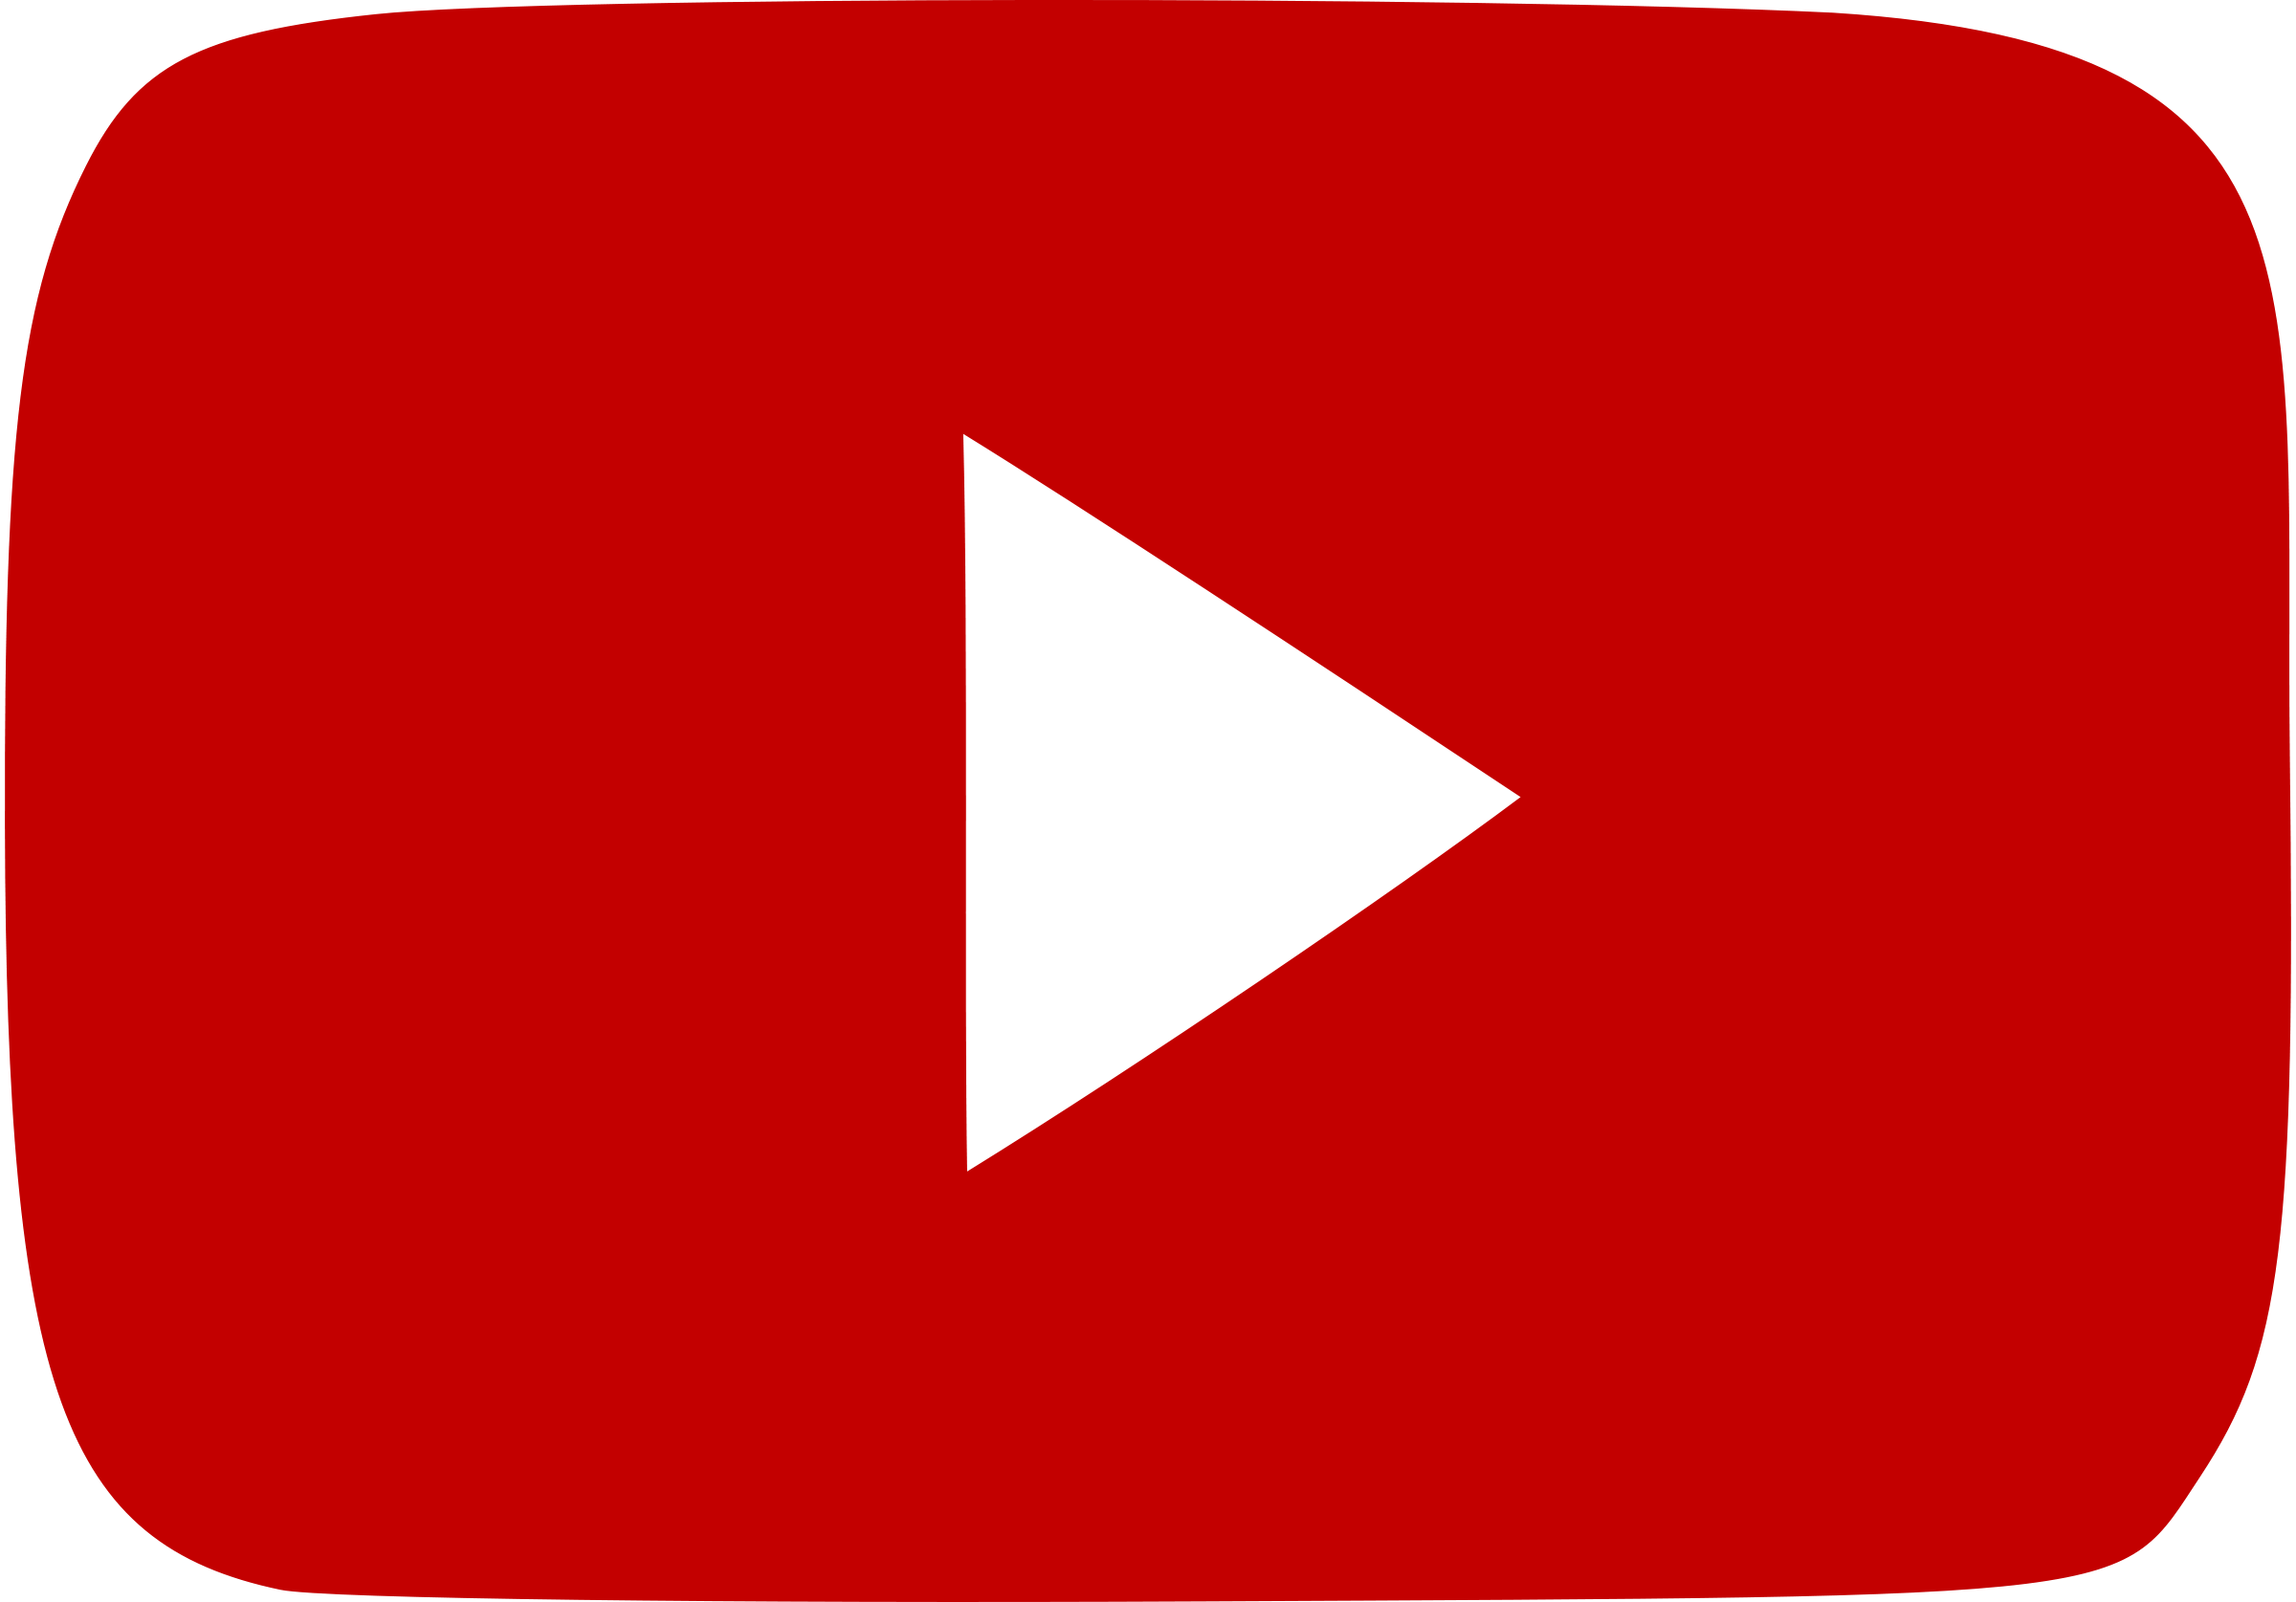 Small promotion on several Youtube videos